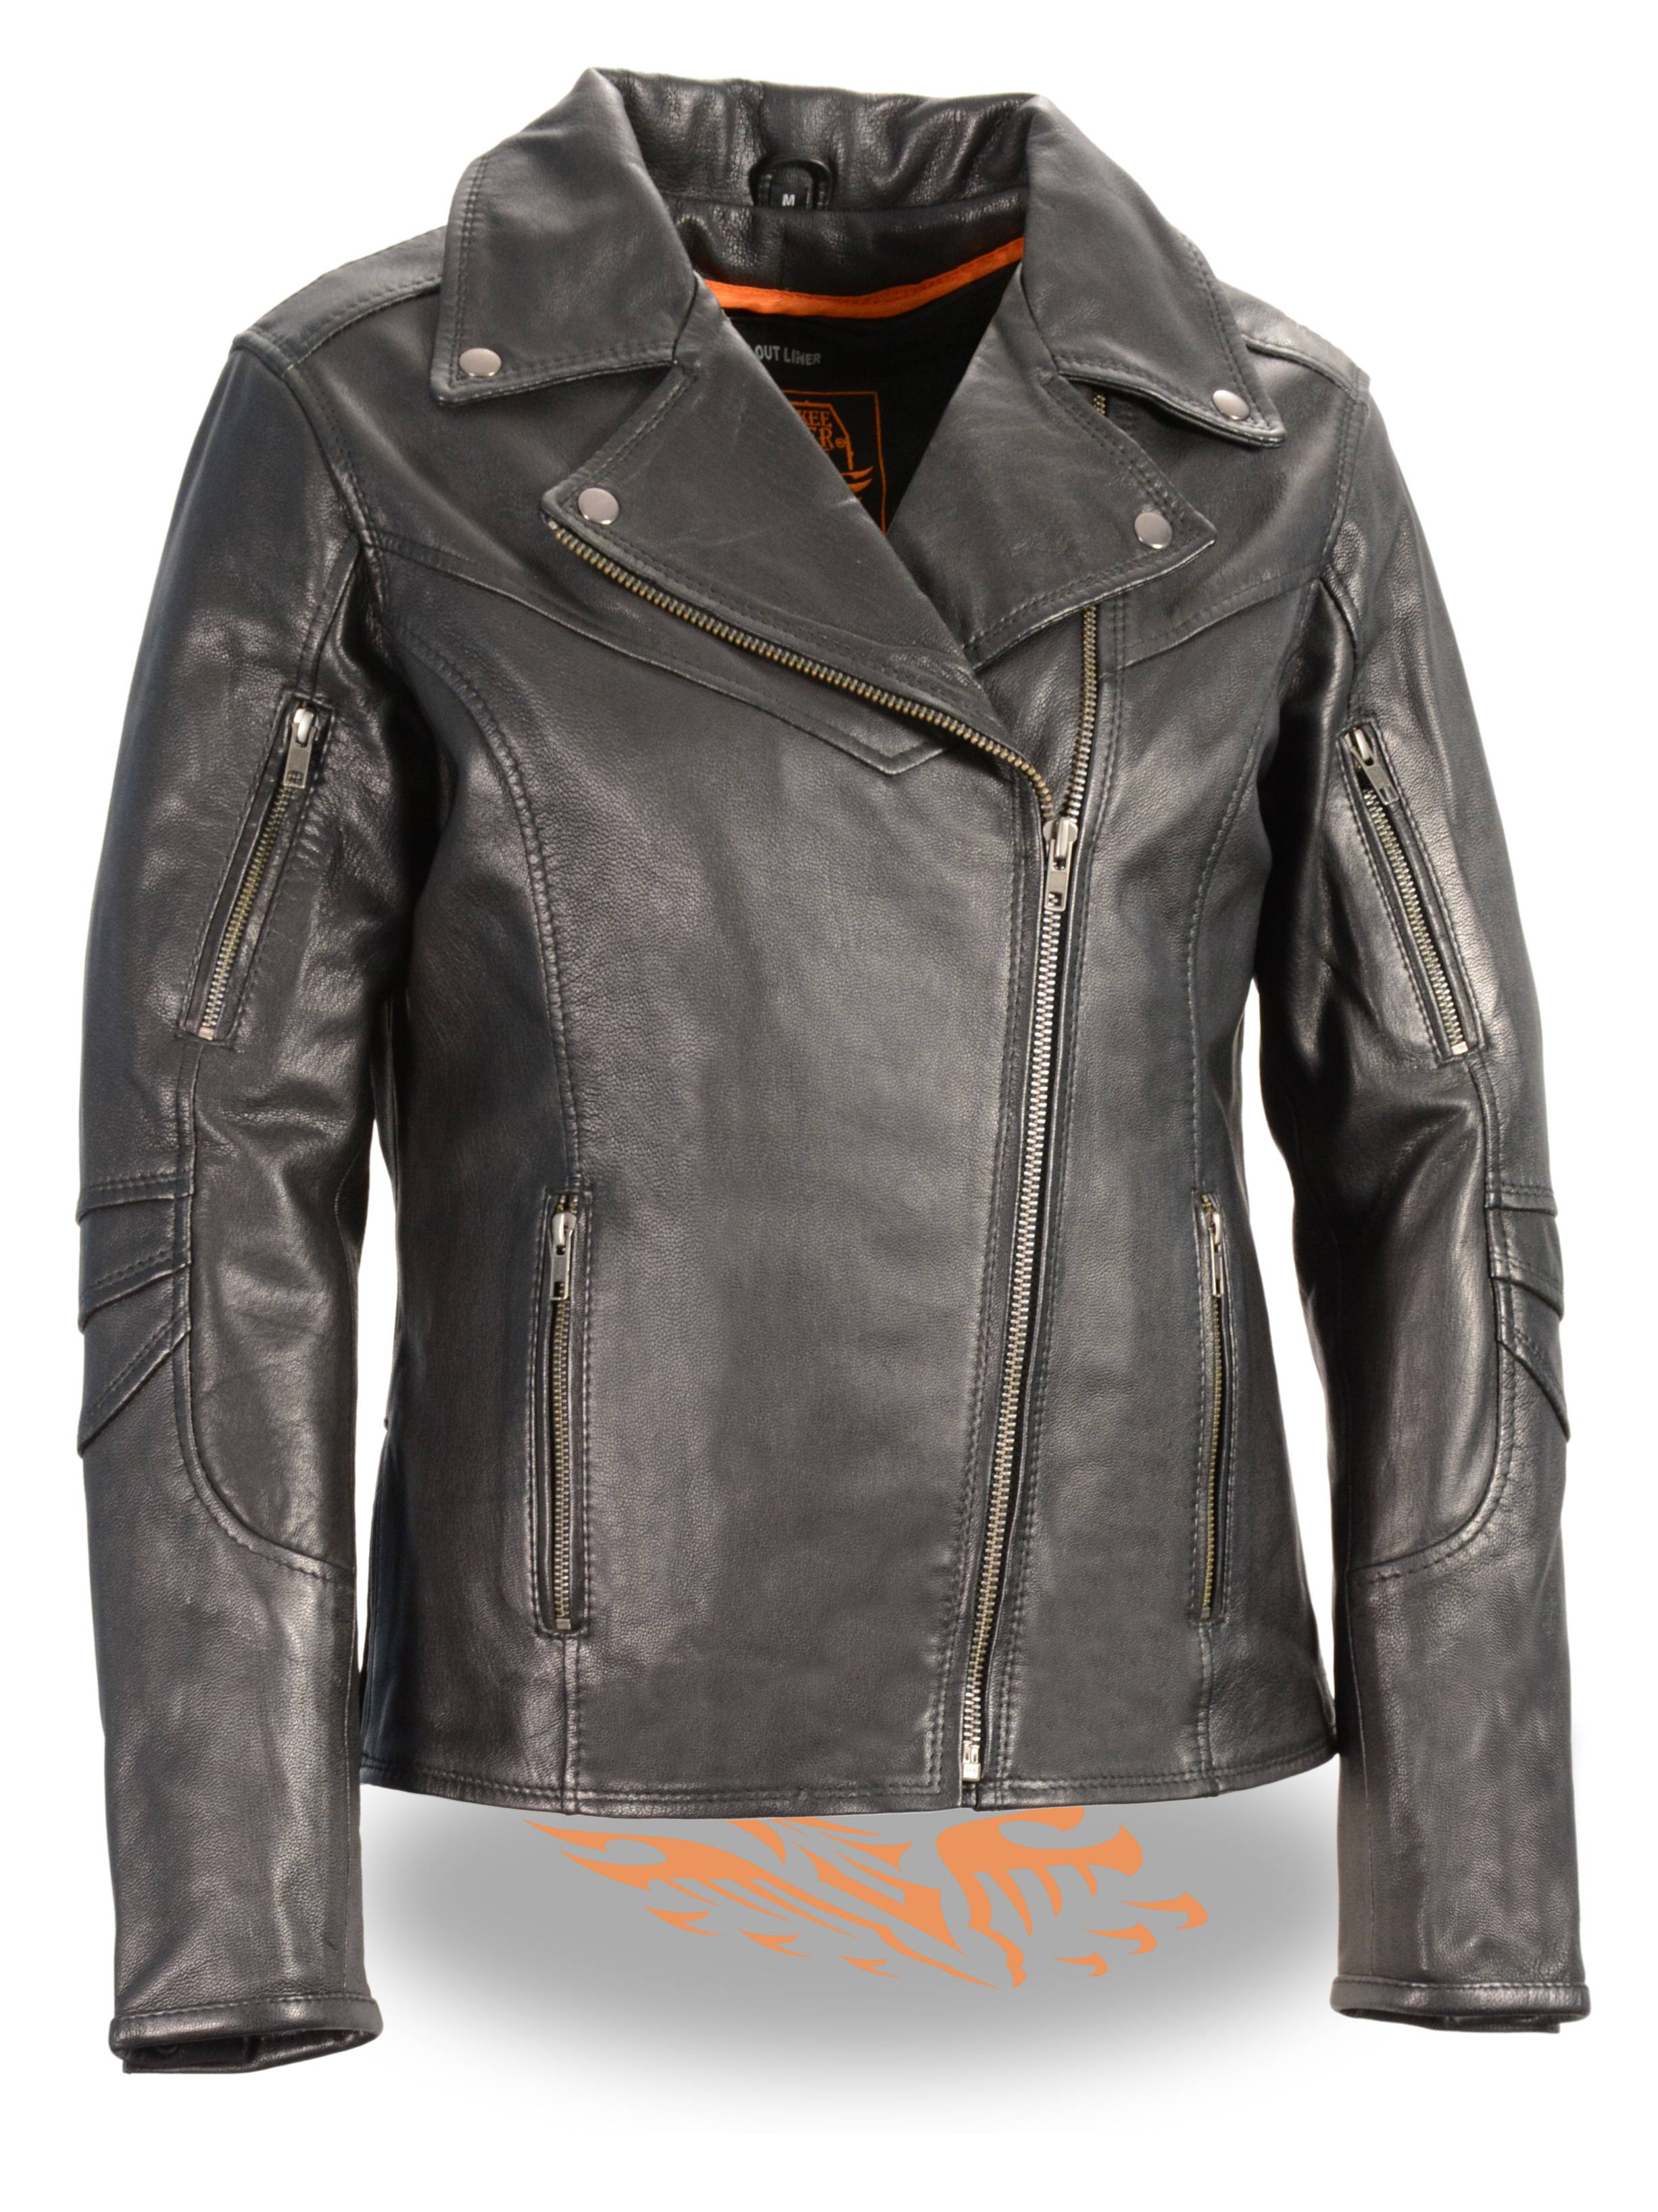 Ladies Black Leather Light Weight Biker Jacket Beltless Vented